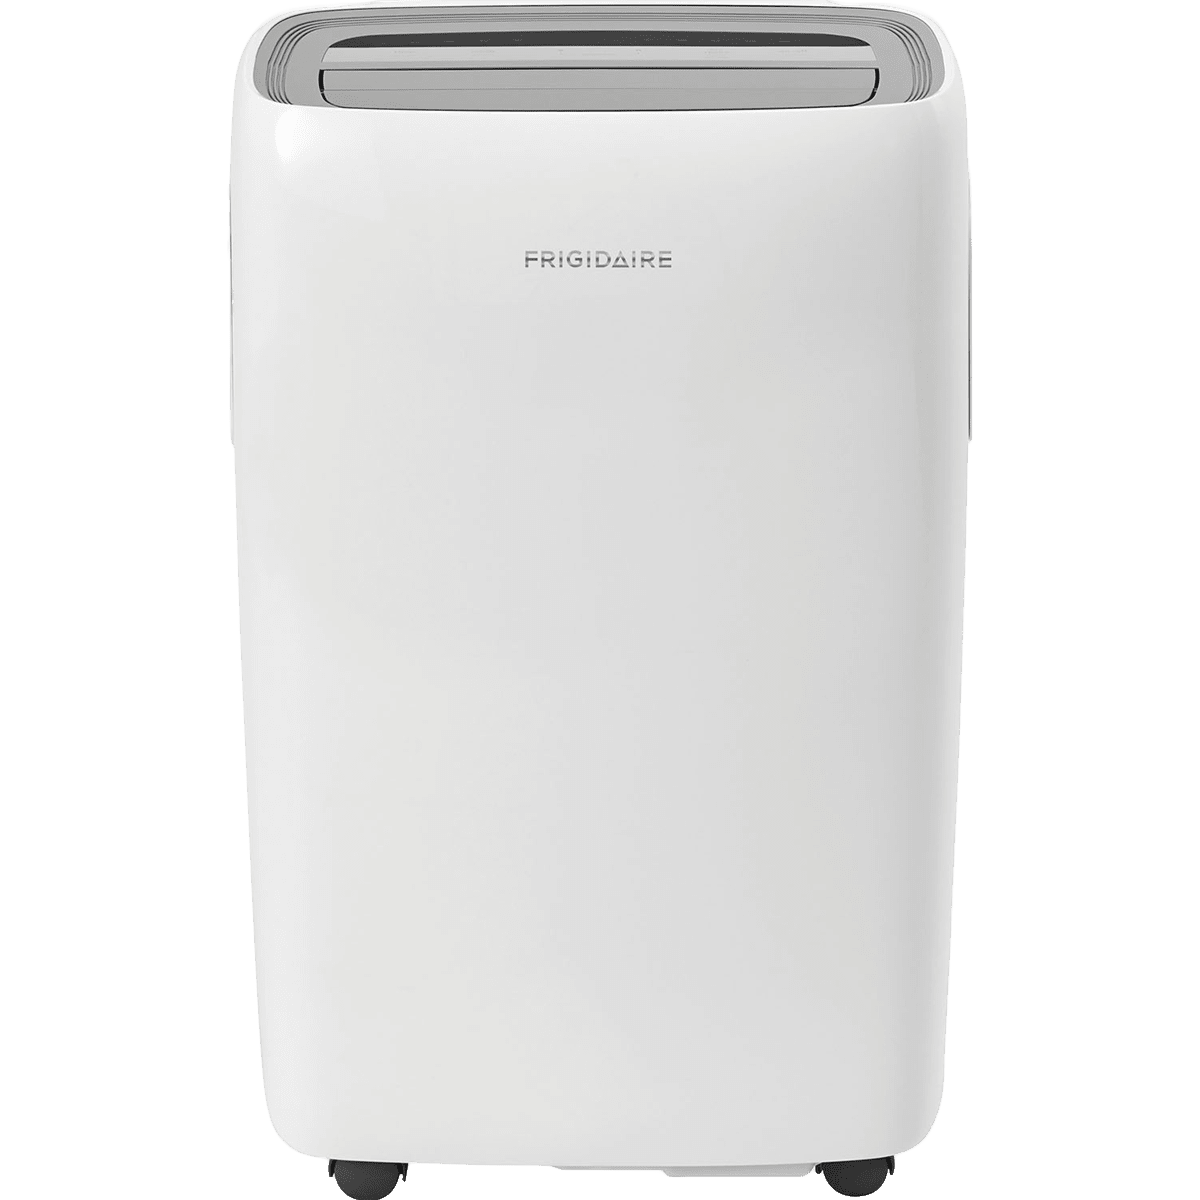 Frigidaire FFPA1022T1 10,000 BTU Portable Air Conditioner fr6399